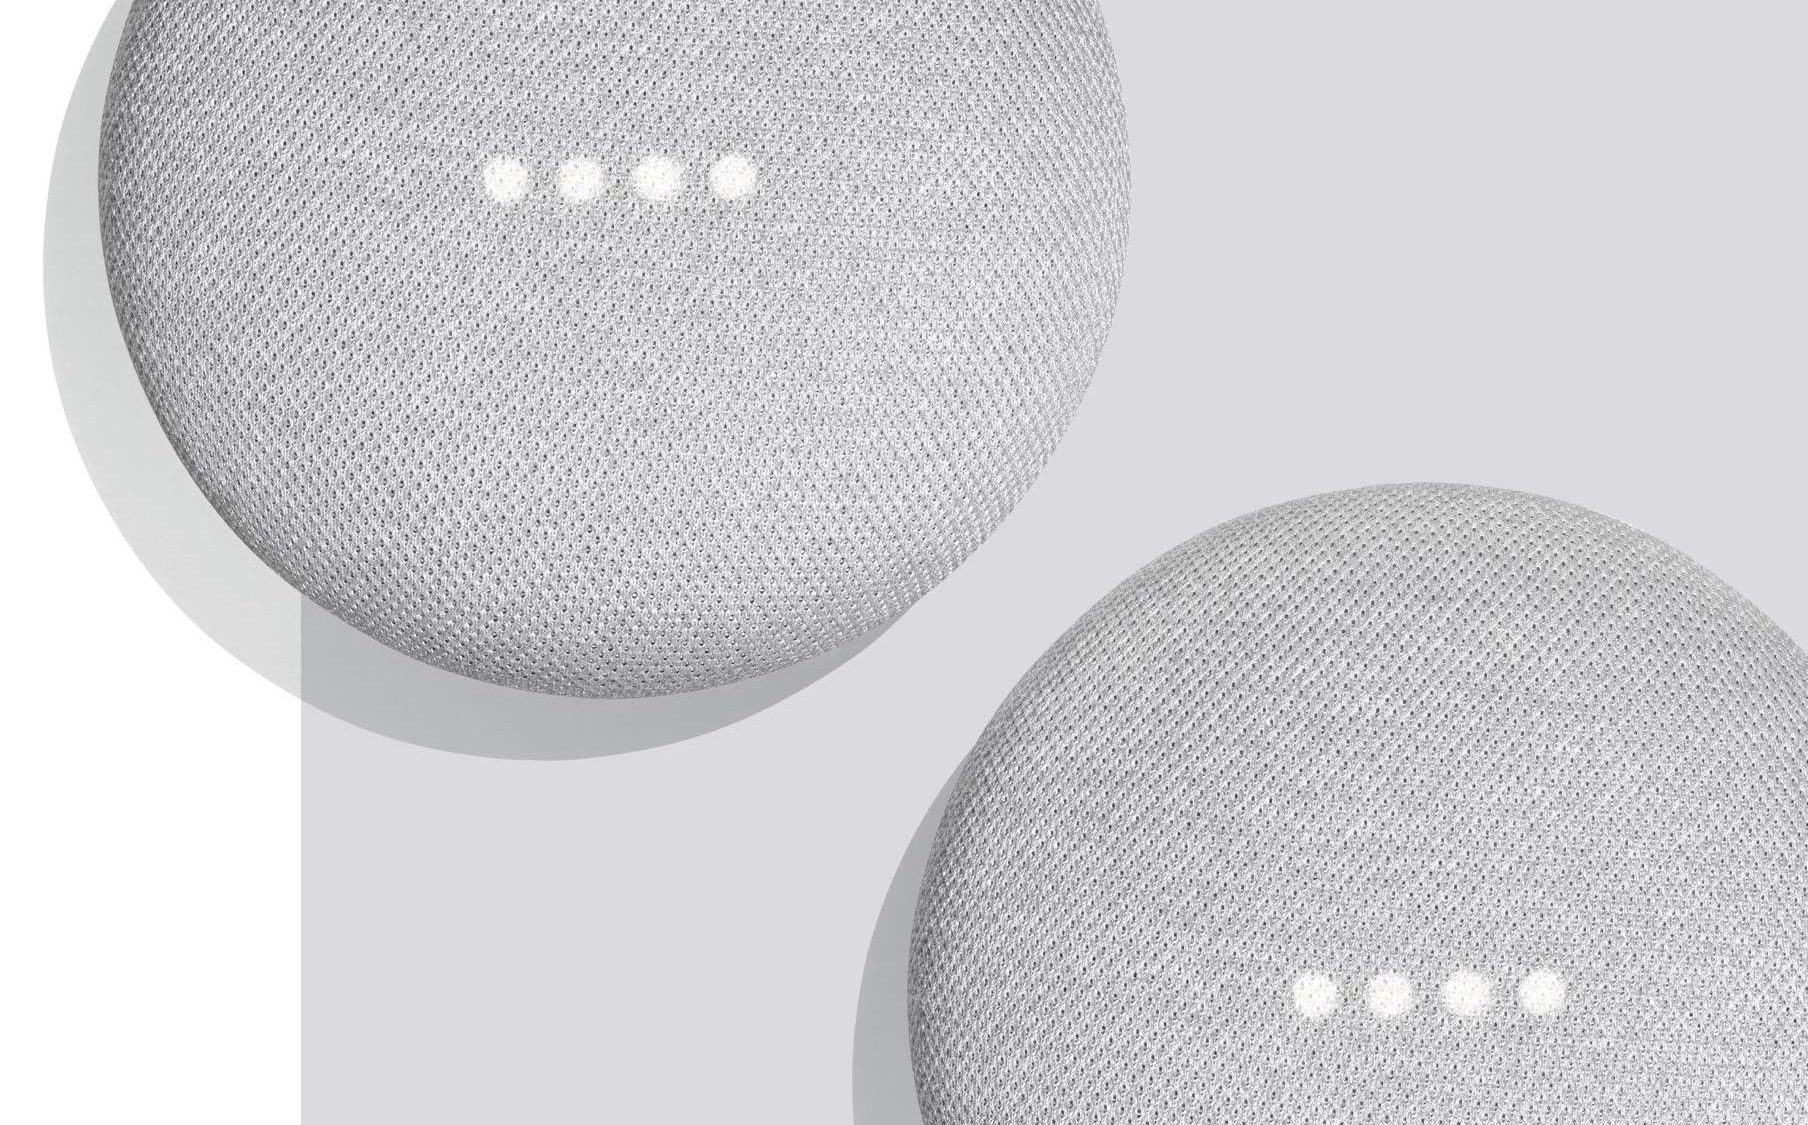 Stereo pairing finally arriving on Google Home and Home Mini